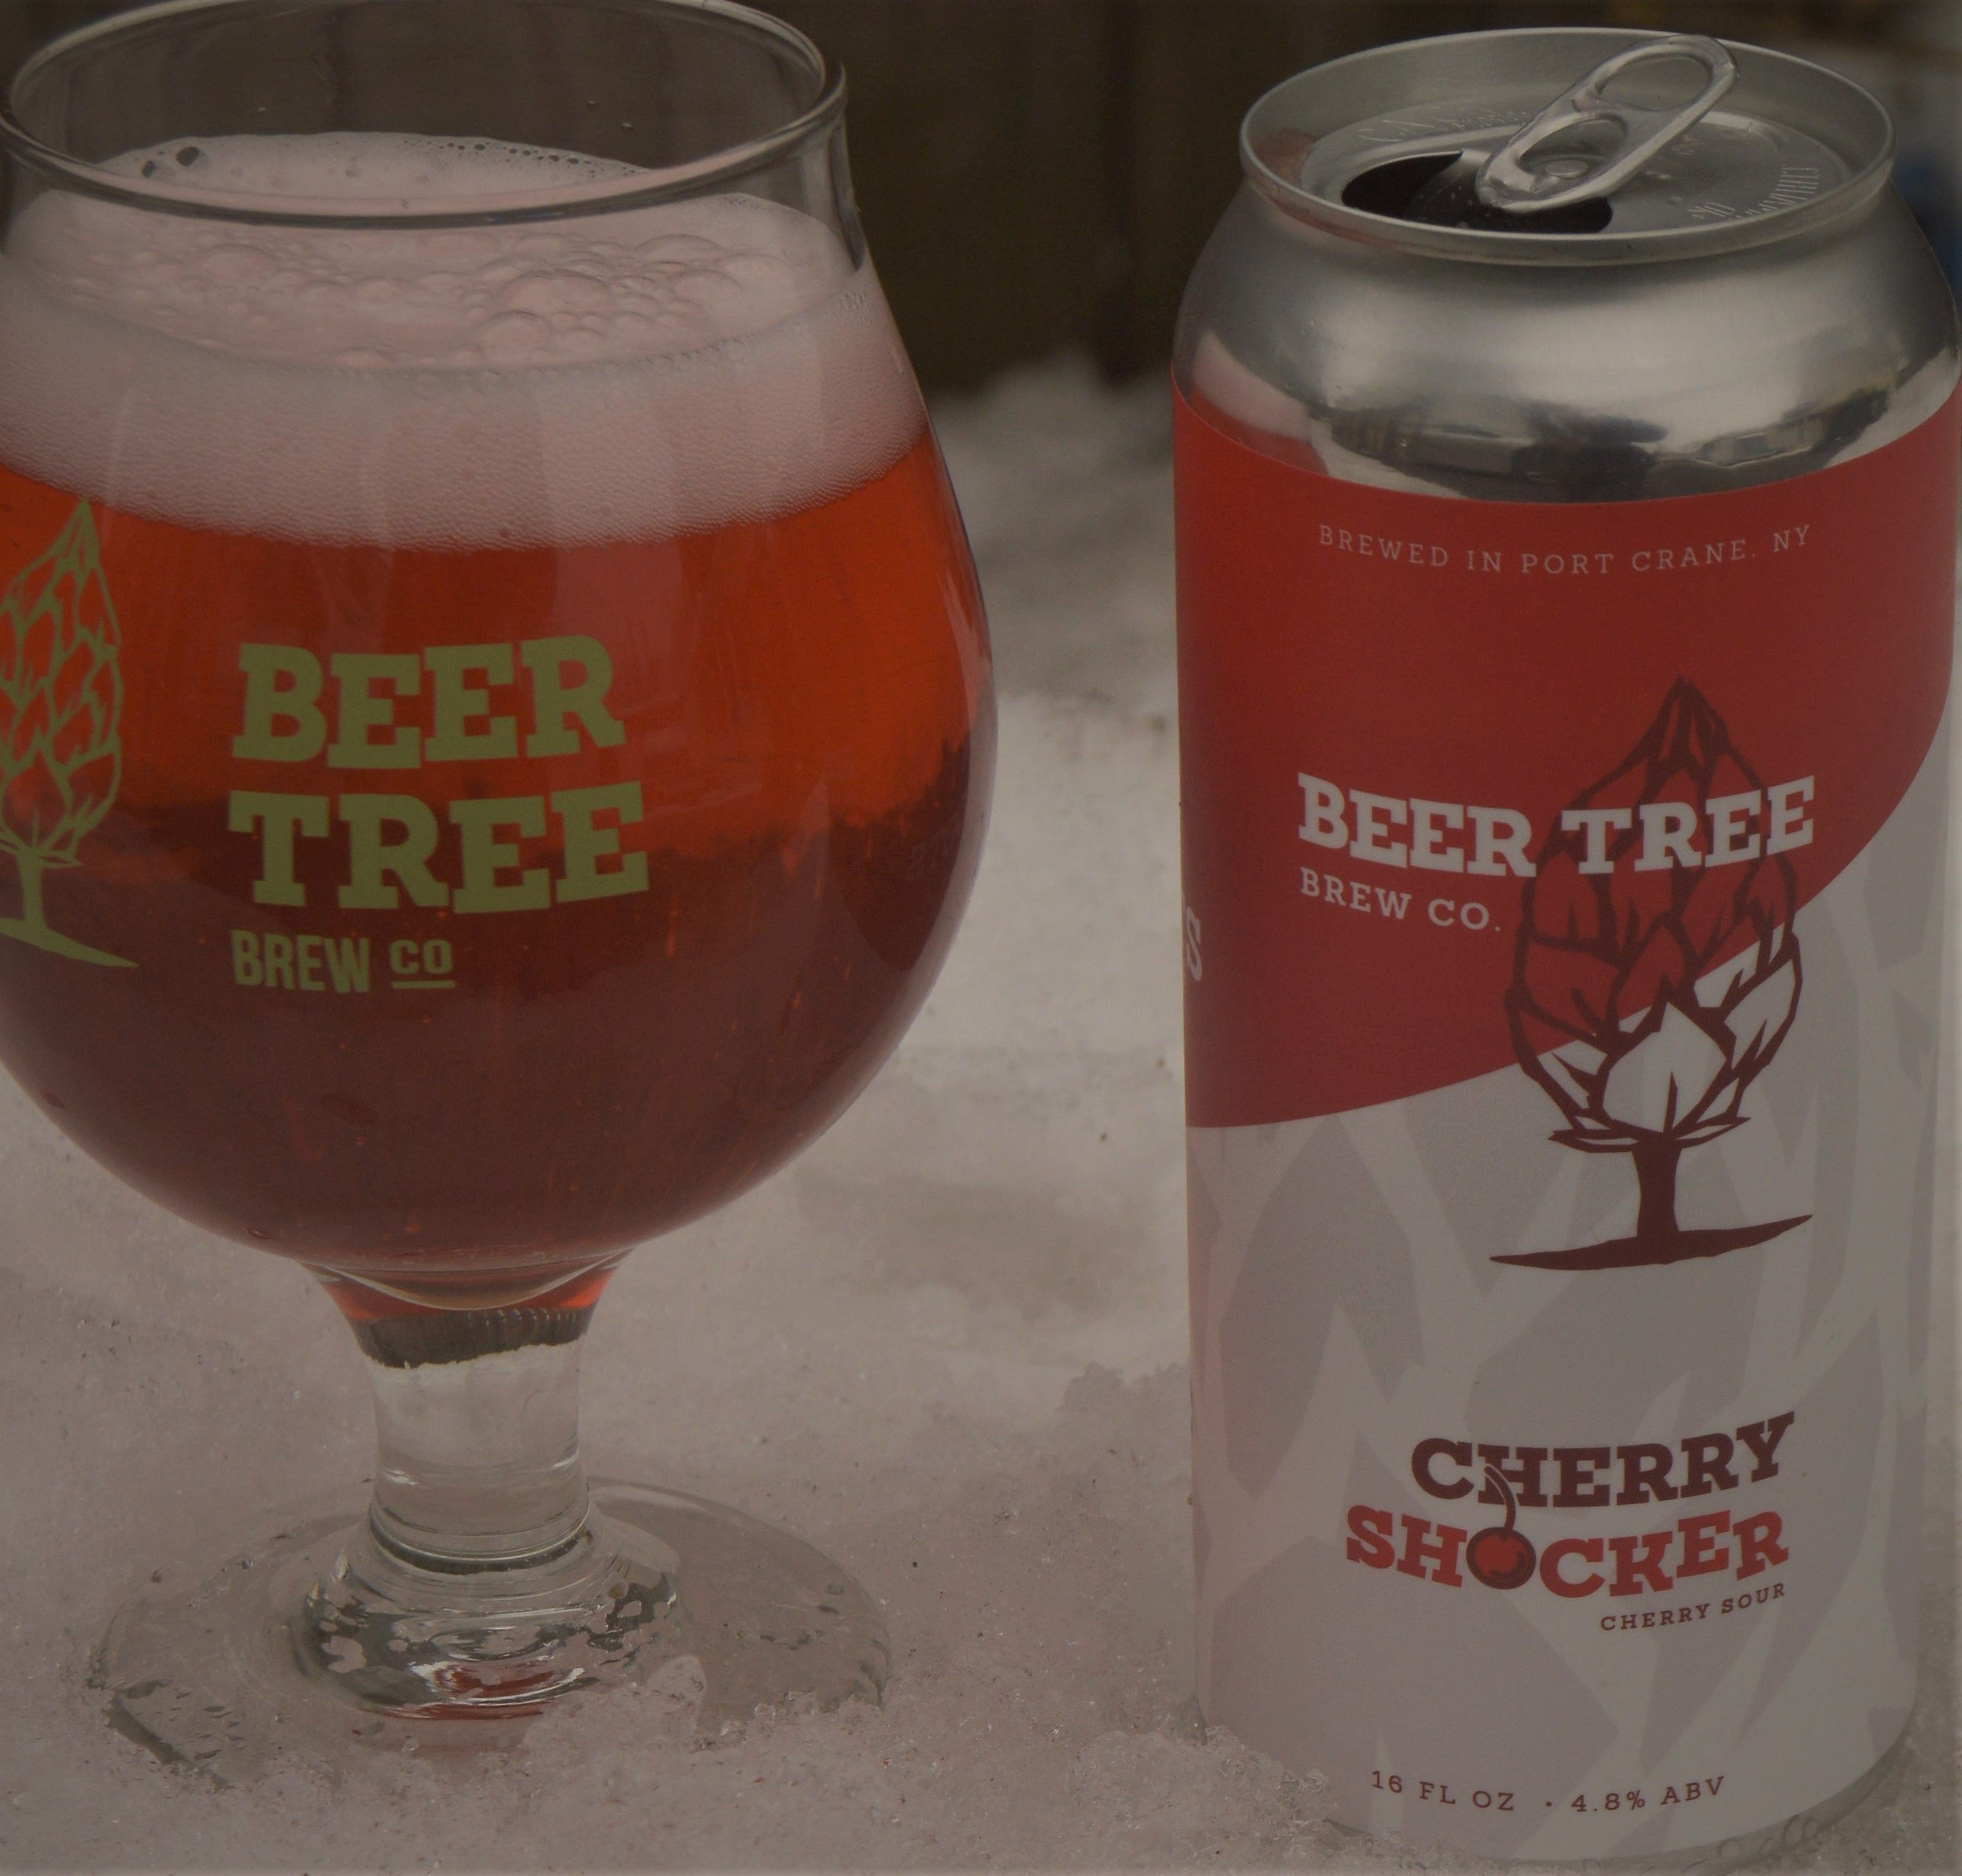 Cherry Shocker Cherry Sour Beer Tree Brew Co Good Shocking No Unless Maybe If You Ve Never Had Anything Sour Cider Drinks Brewing Co Sour Beer